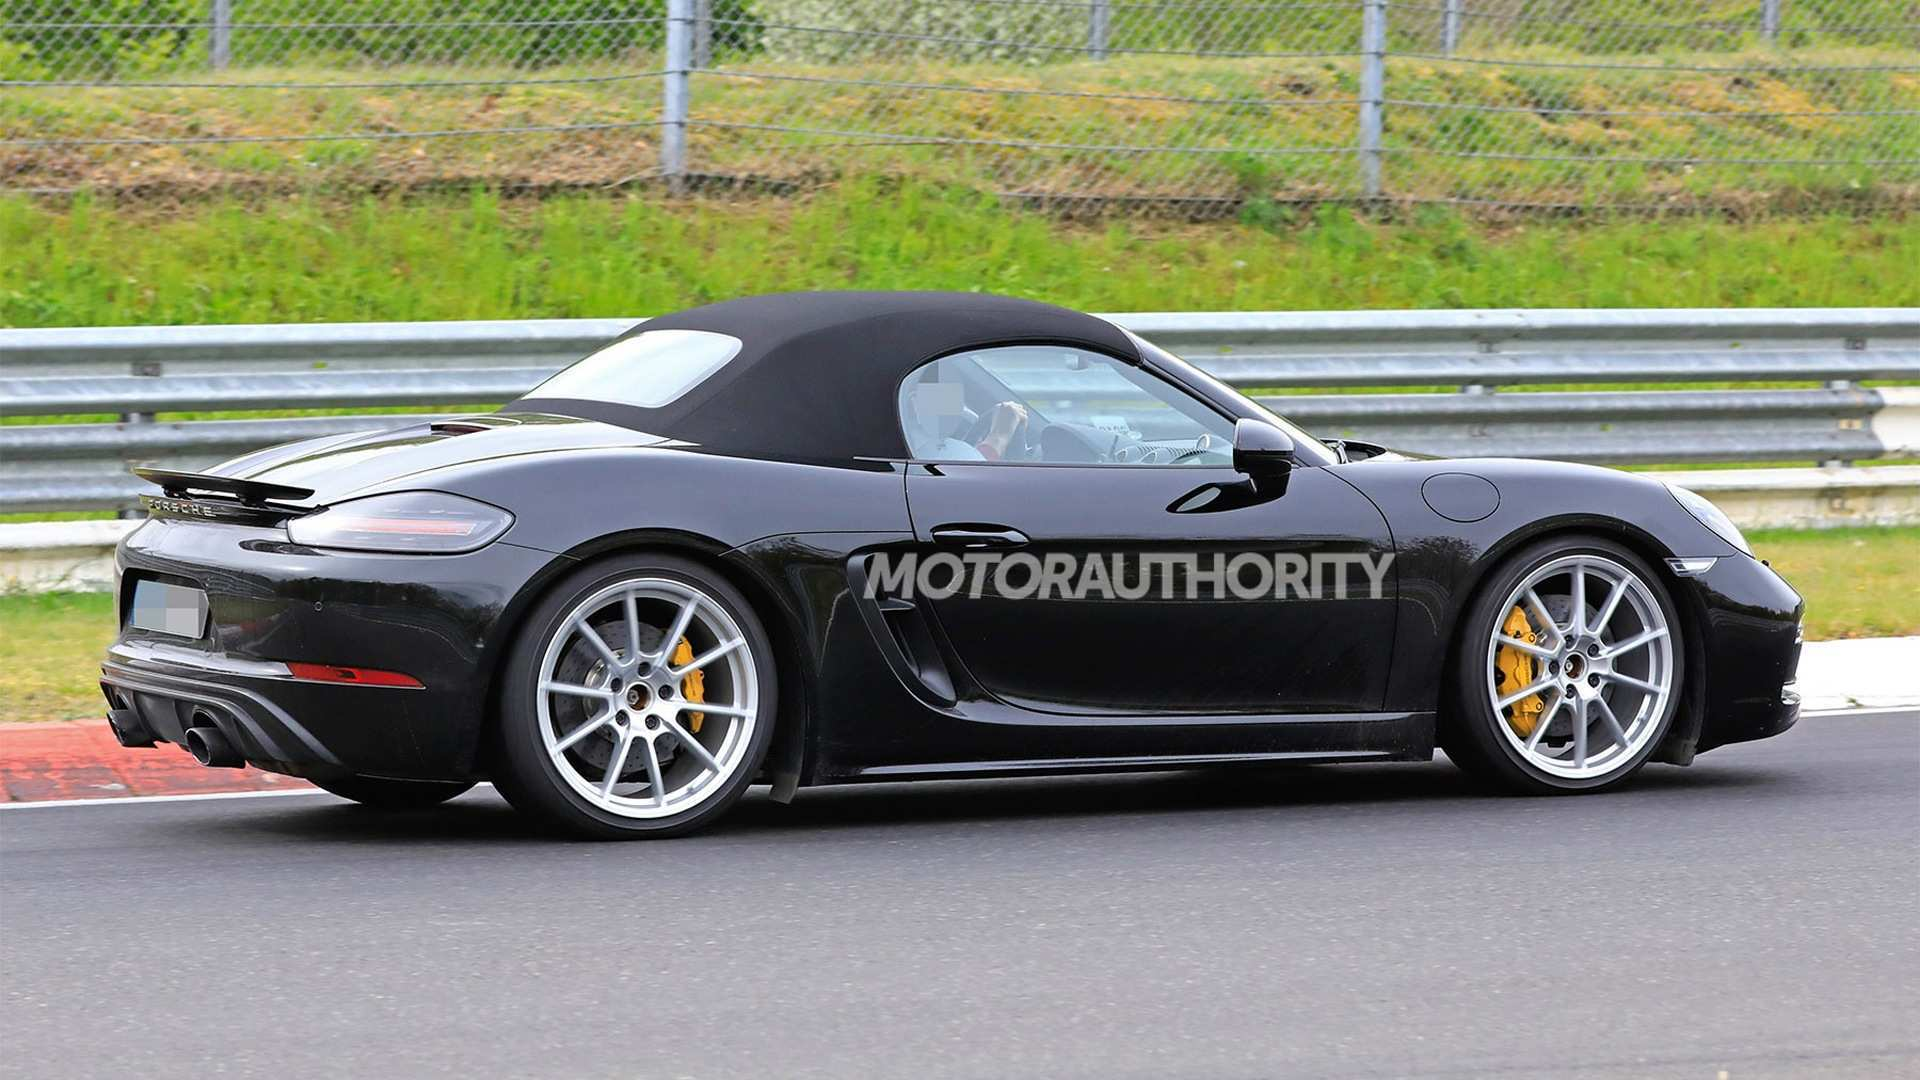 81 The Best 2020 Porsche Boxster Spyder Price And Review